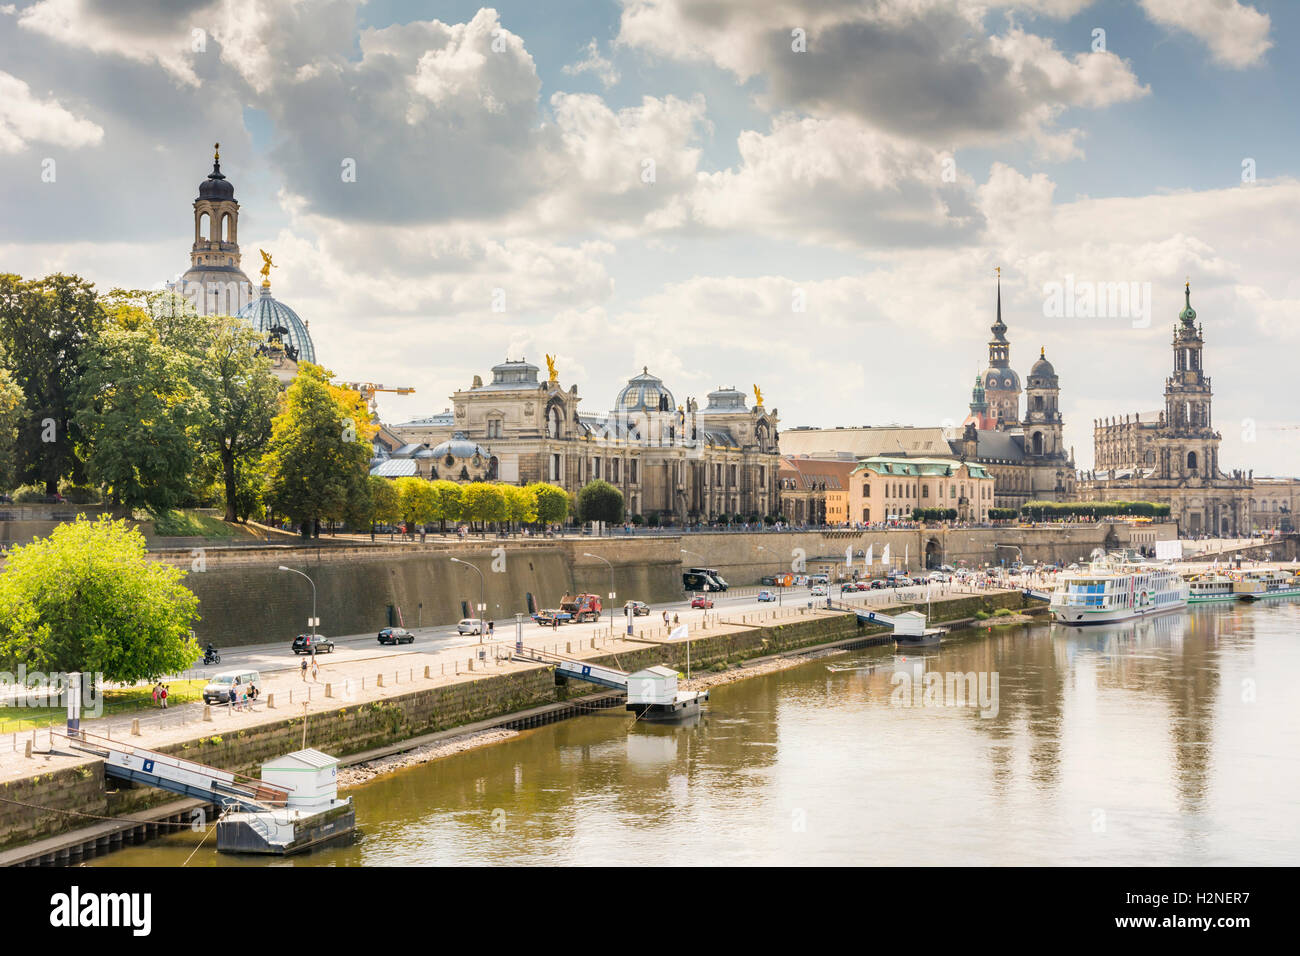 DRESDEN, GERMANY - AUGUST 22: Tourists at the promenade of the river Elbe in Dresden, Germany on August 22, 2016. - Stock Image